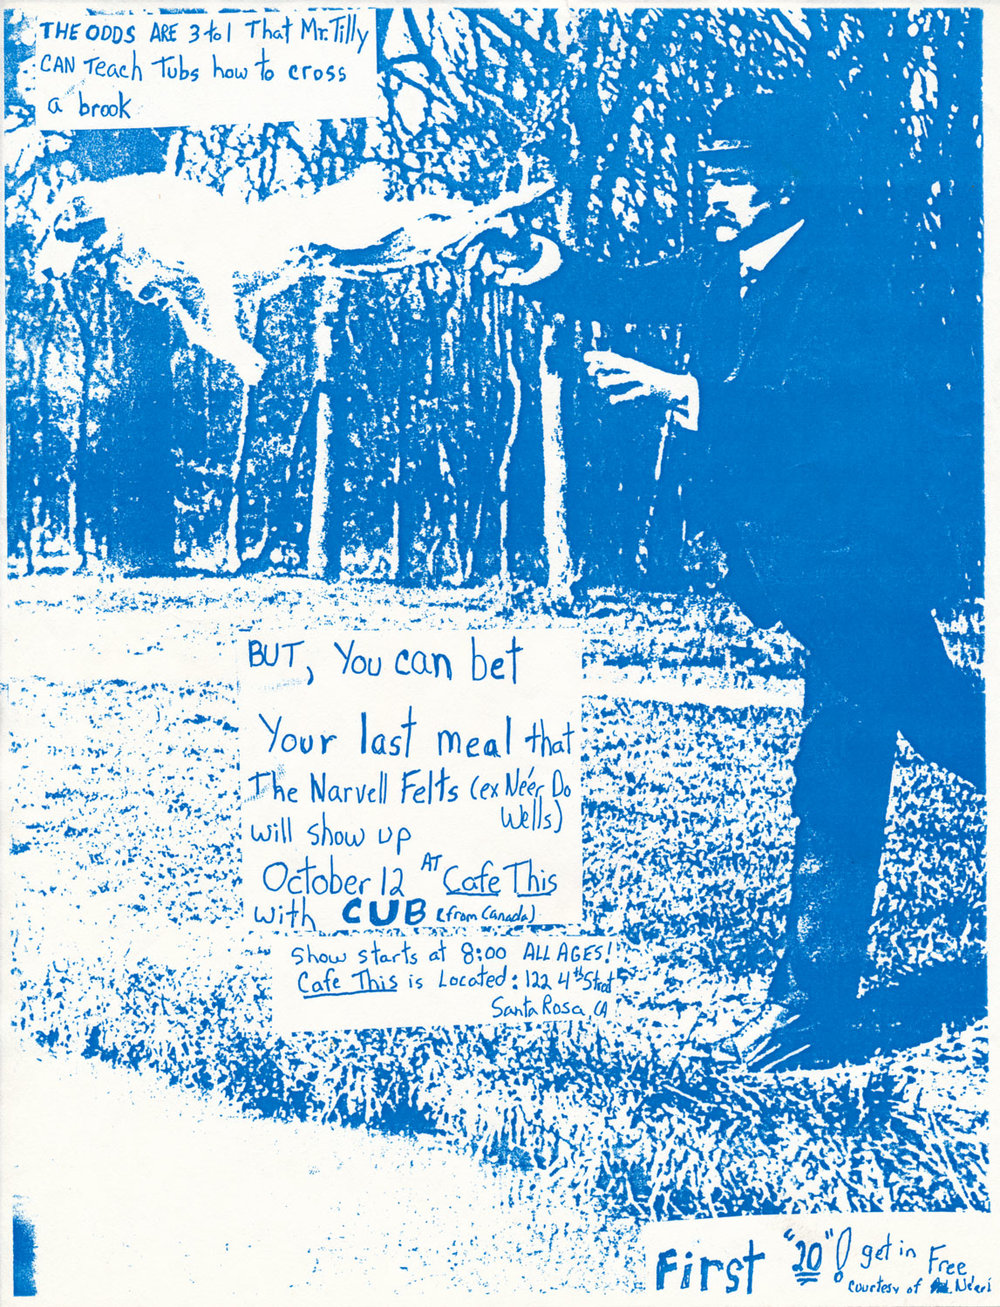 Narvel-Felts-Cub-Flyer-oct-12.jpg